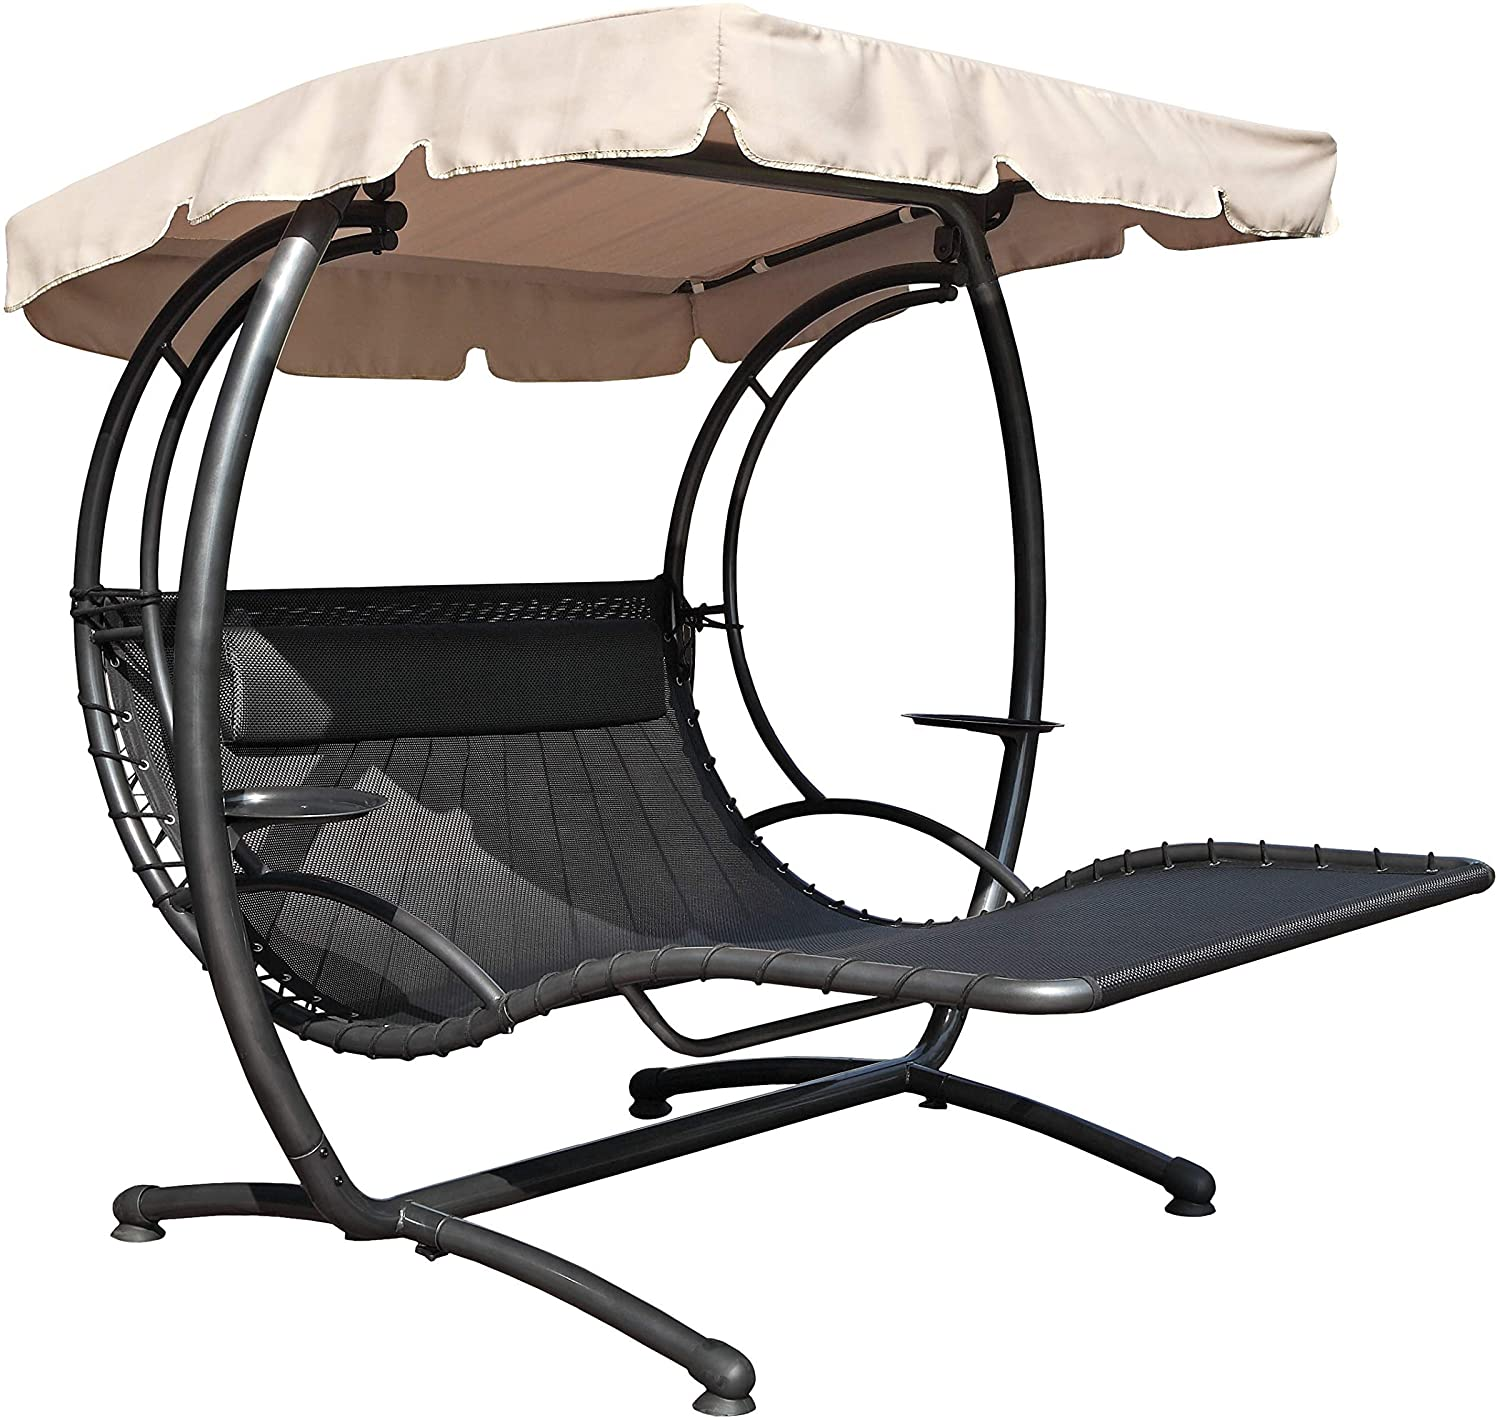 Swing Recliner 2-Seater hanging chaise double